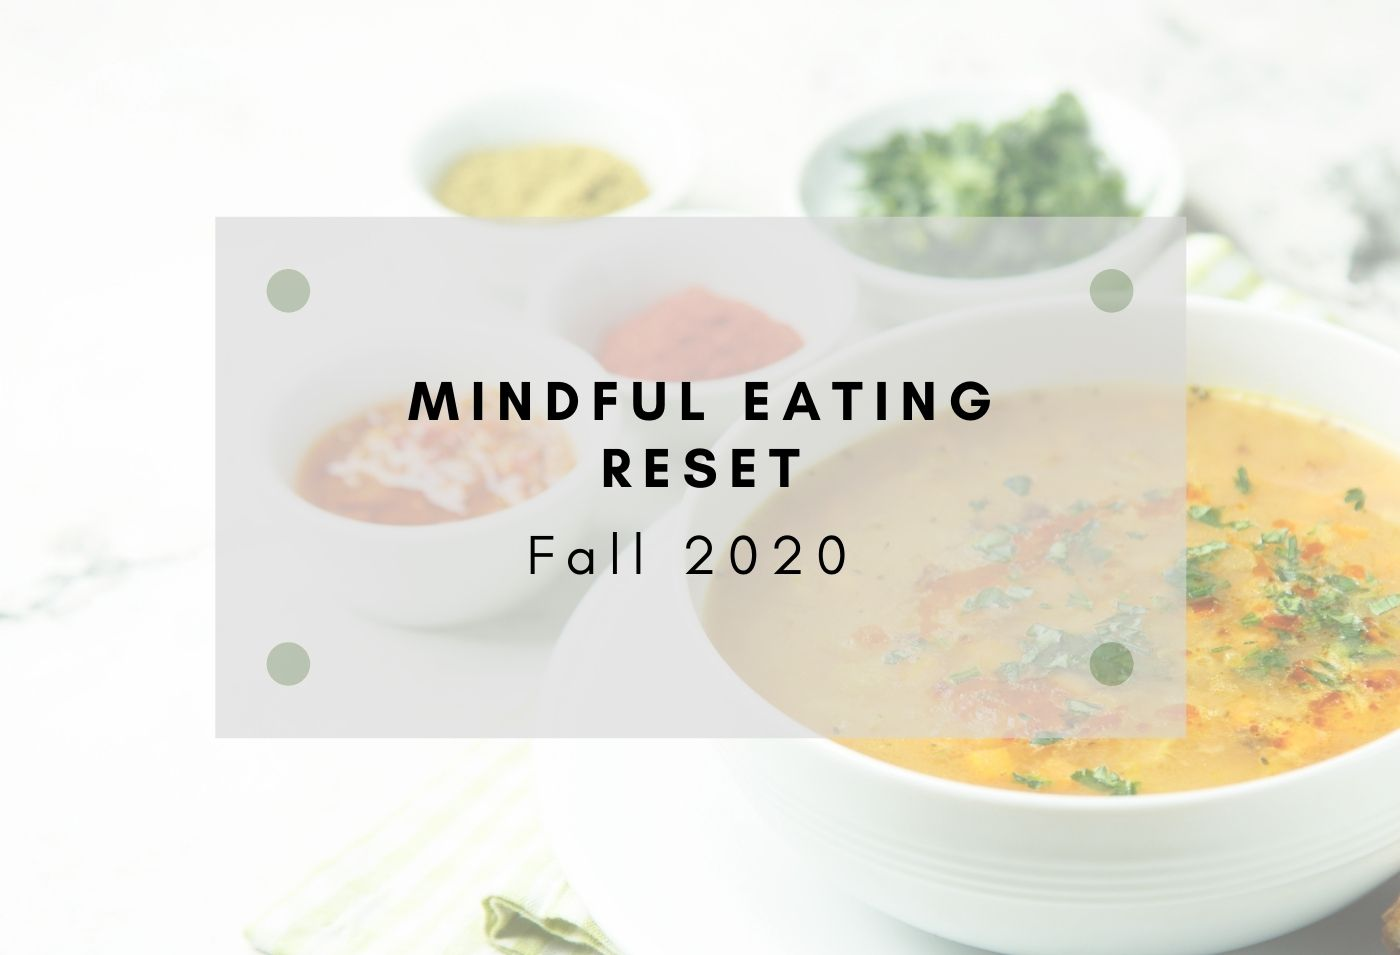 Fall Mindful Eating Reset